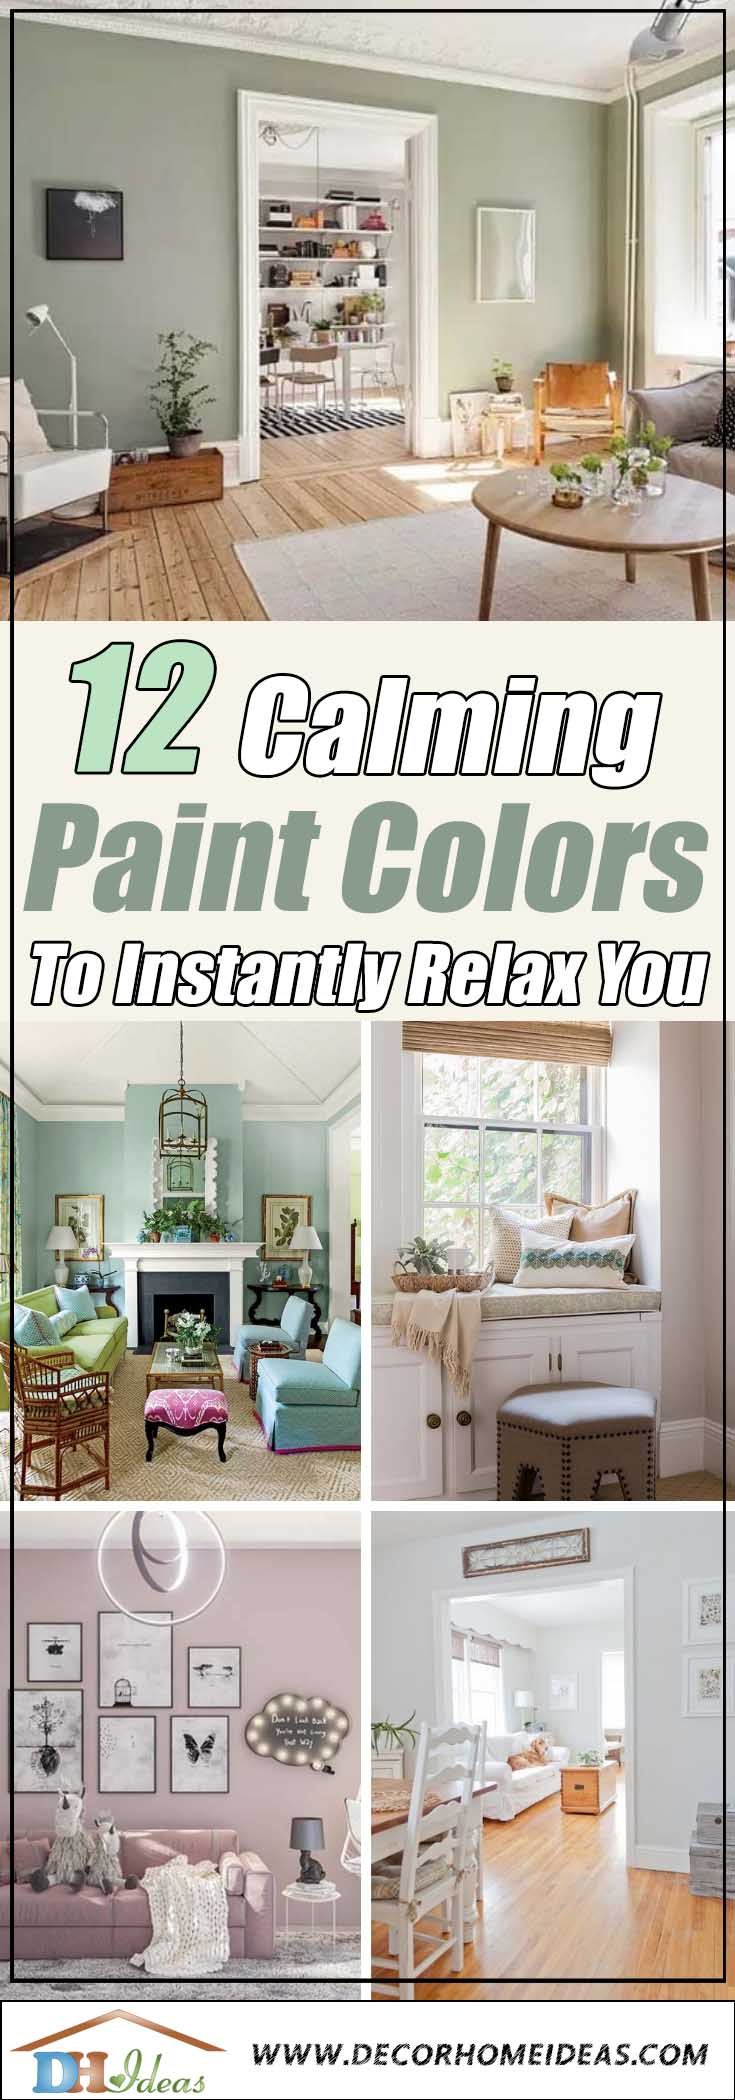 15 Calming Paint Colors That Will Instantly Relax You #paintcolor #relax #homedecor #calming color #decorhomeideas